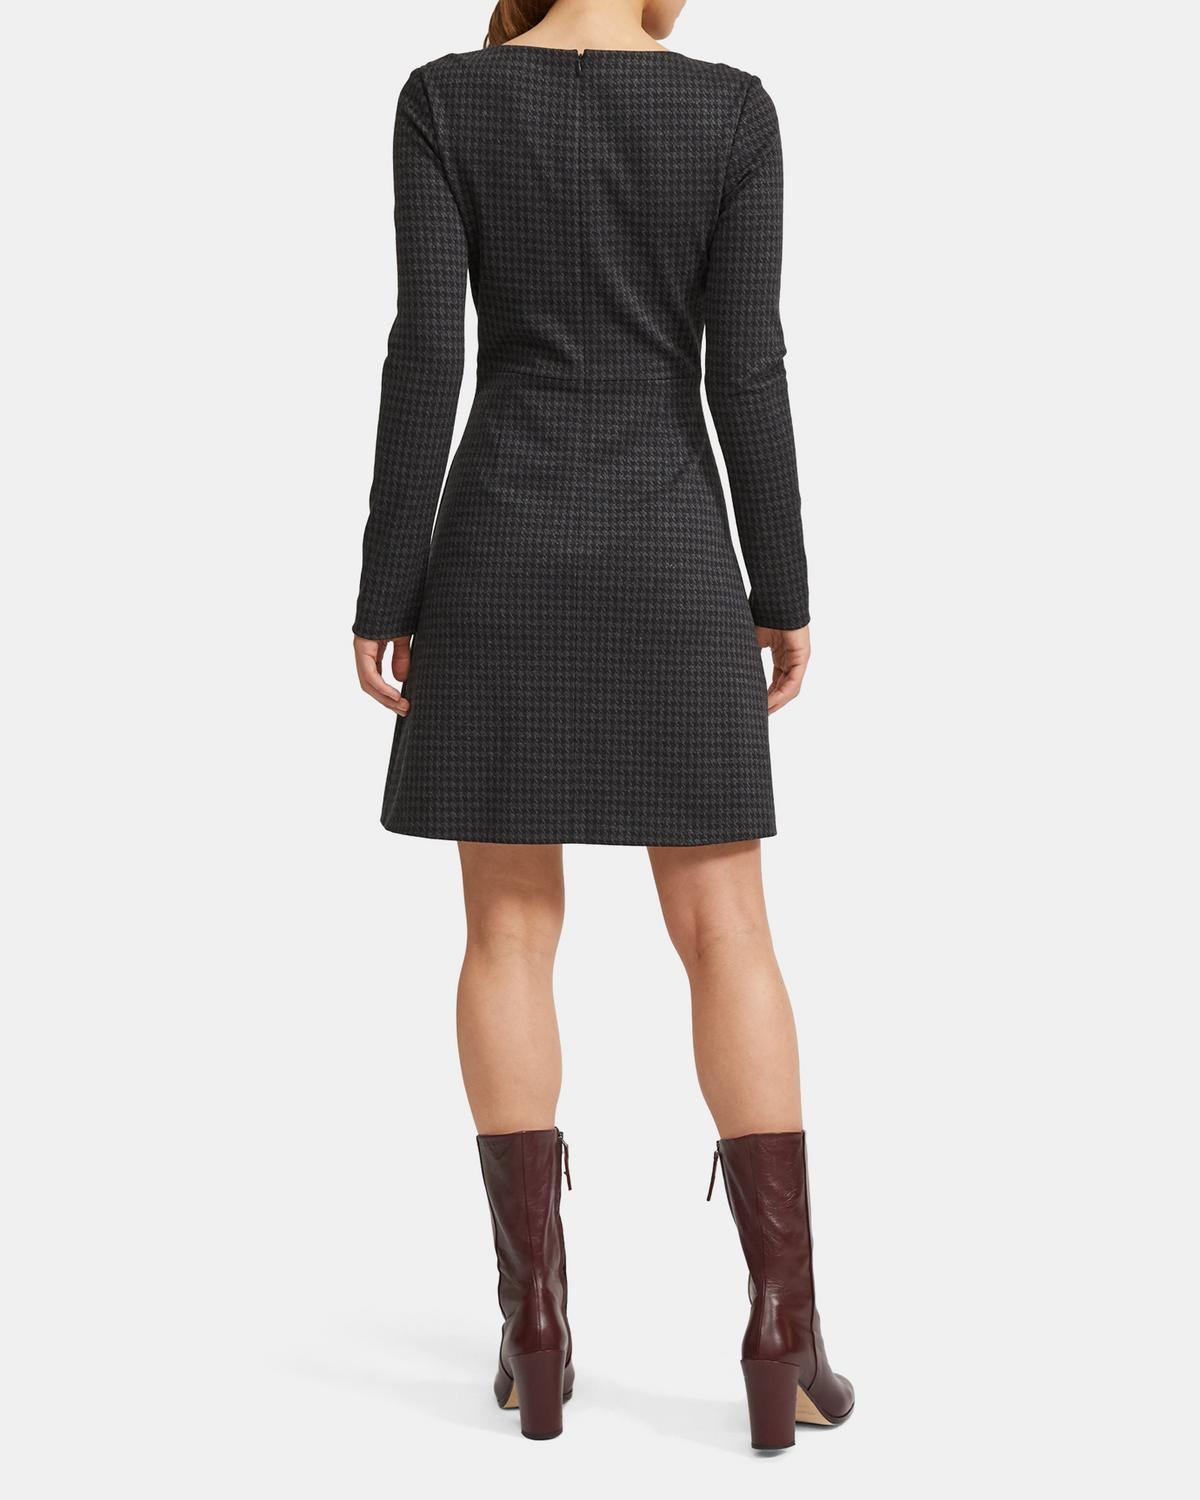 Houndstooth Knit Seamed-Waist Dress